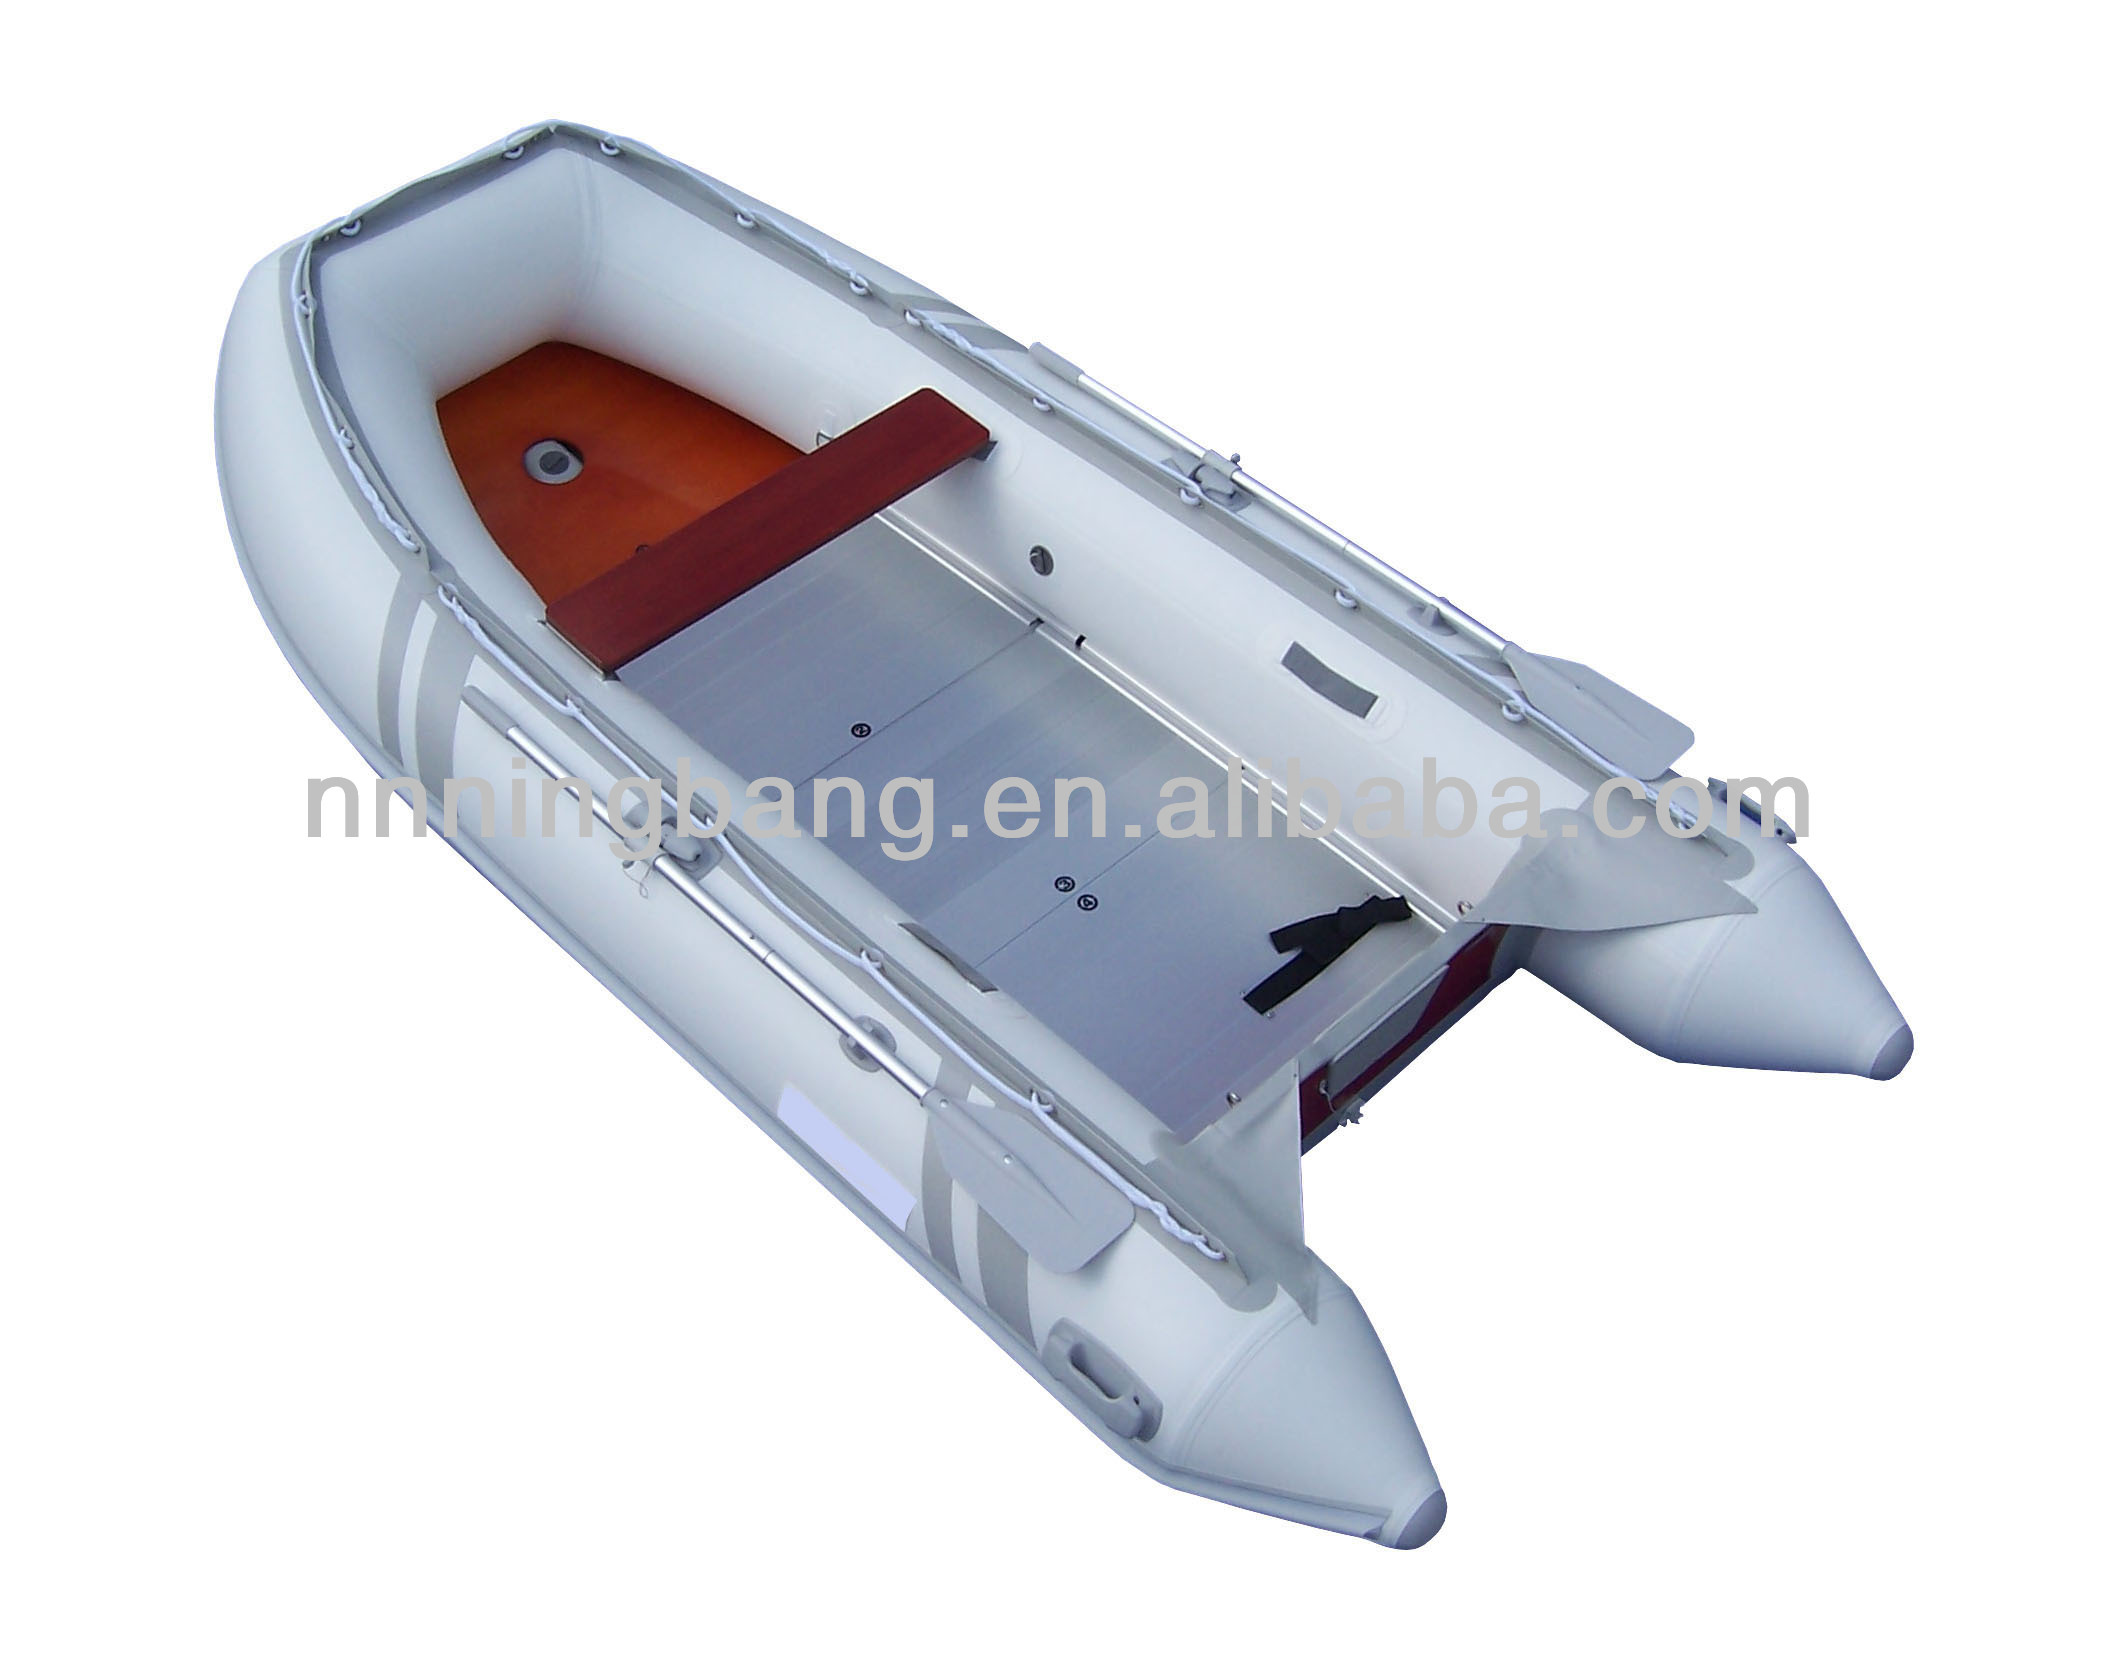 NB-AB-270-001 NingBang New Cheap Motorboat for Rafting